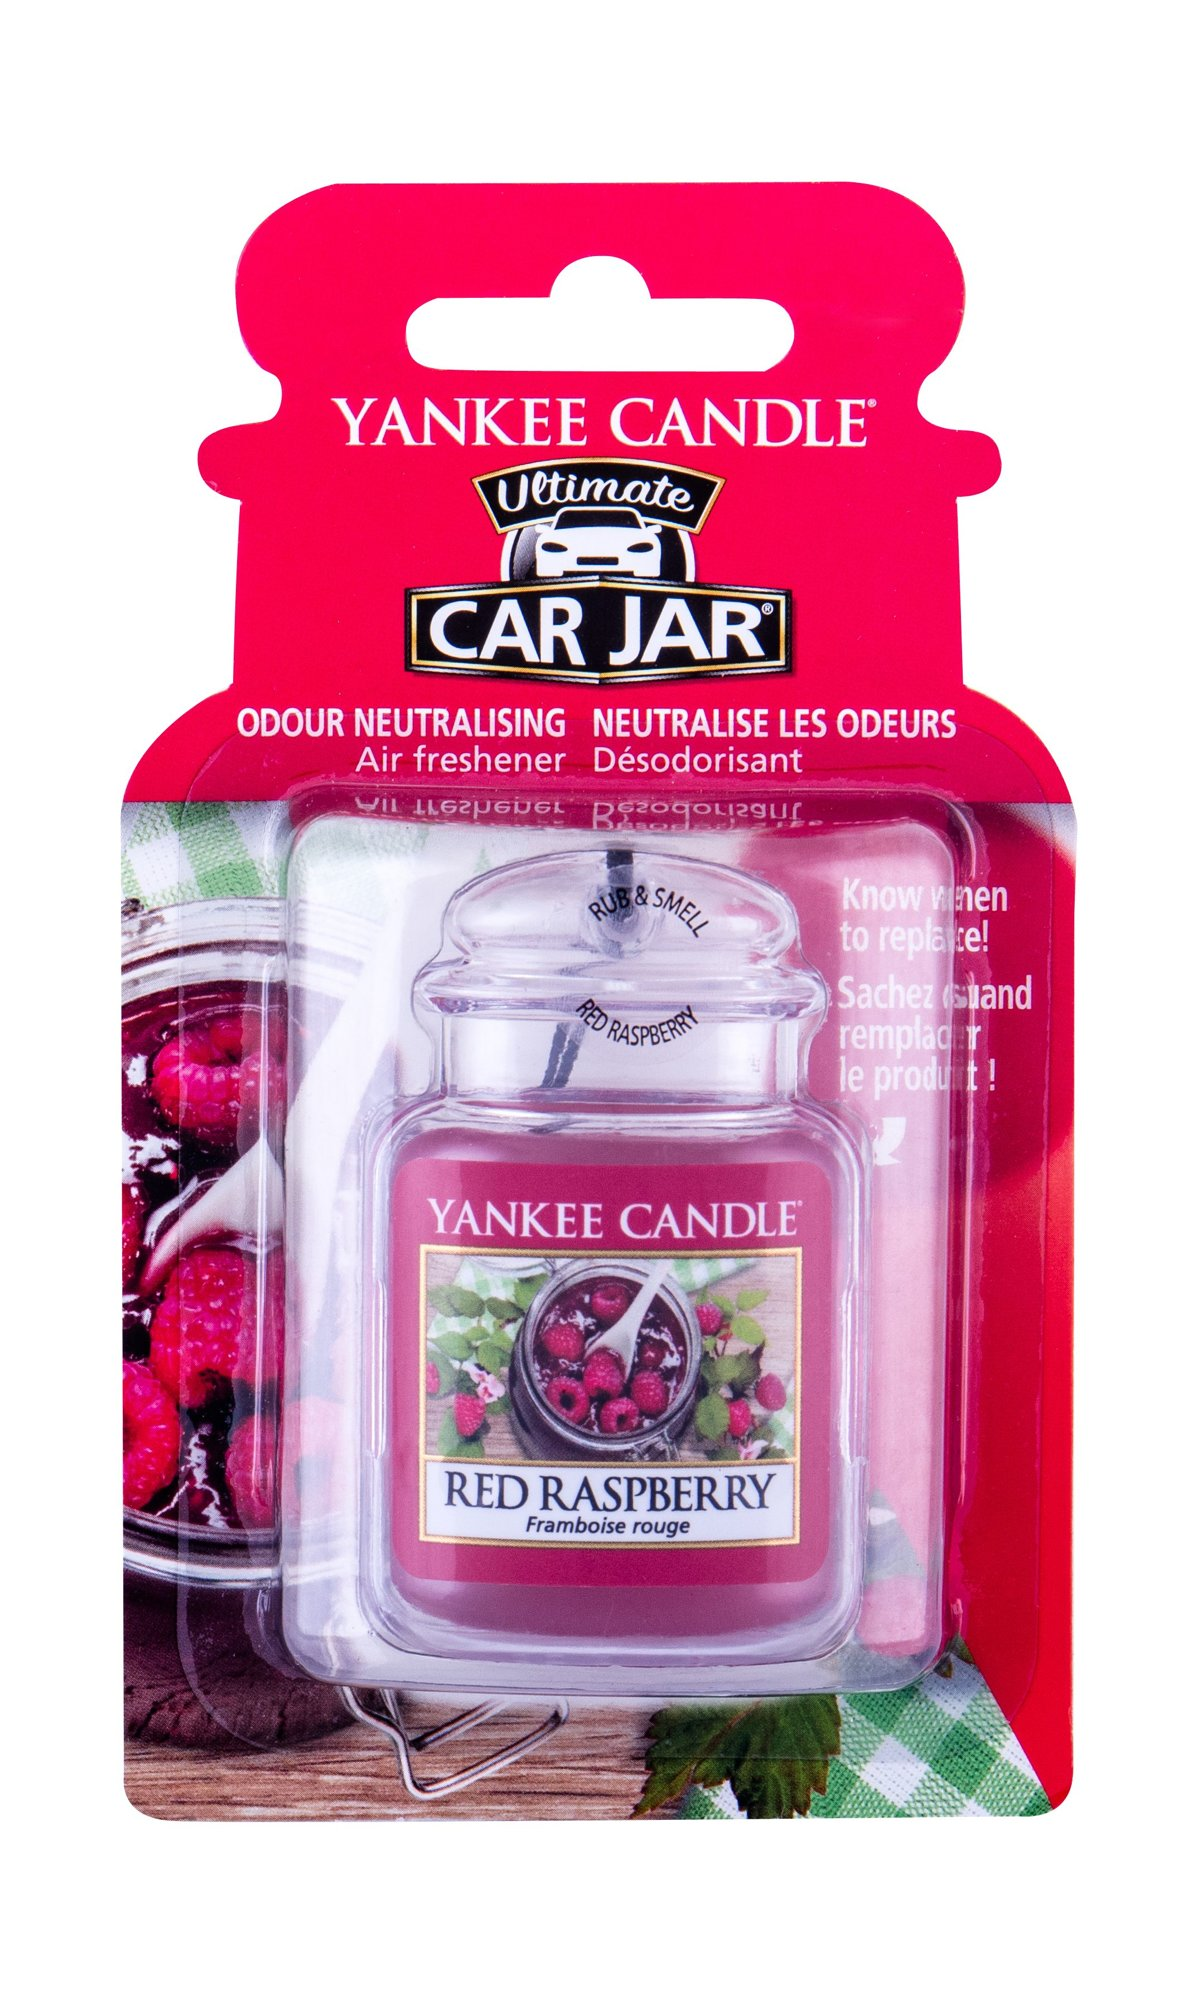 Yankee Candle Red Raspberry Car Jar (Vůně do auta, U, 1 ks)